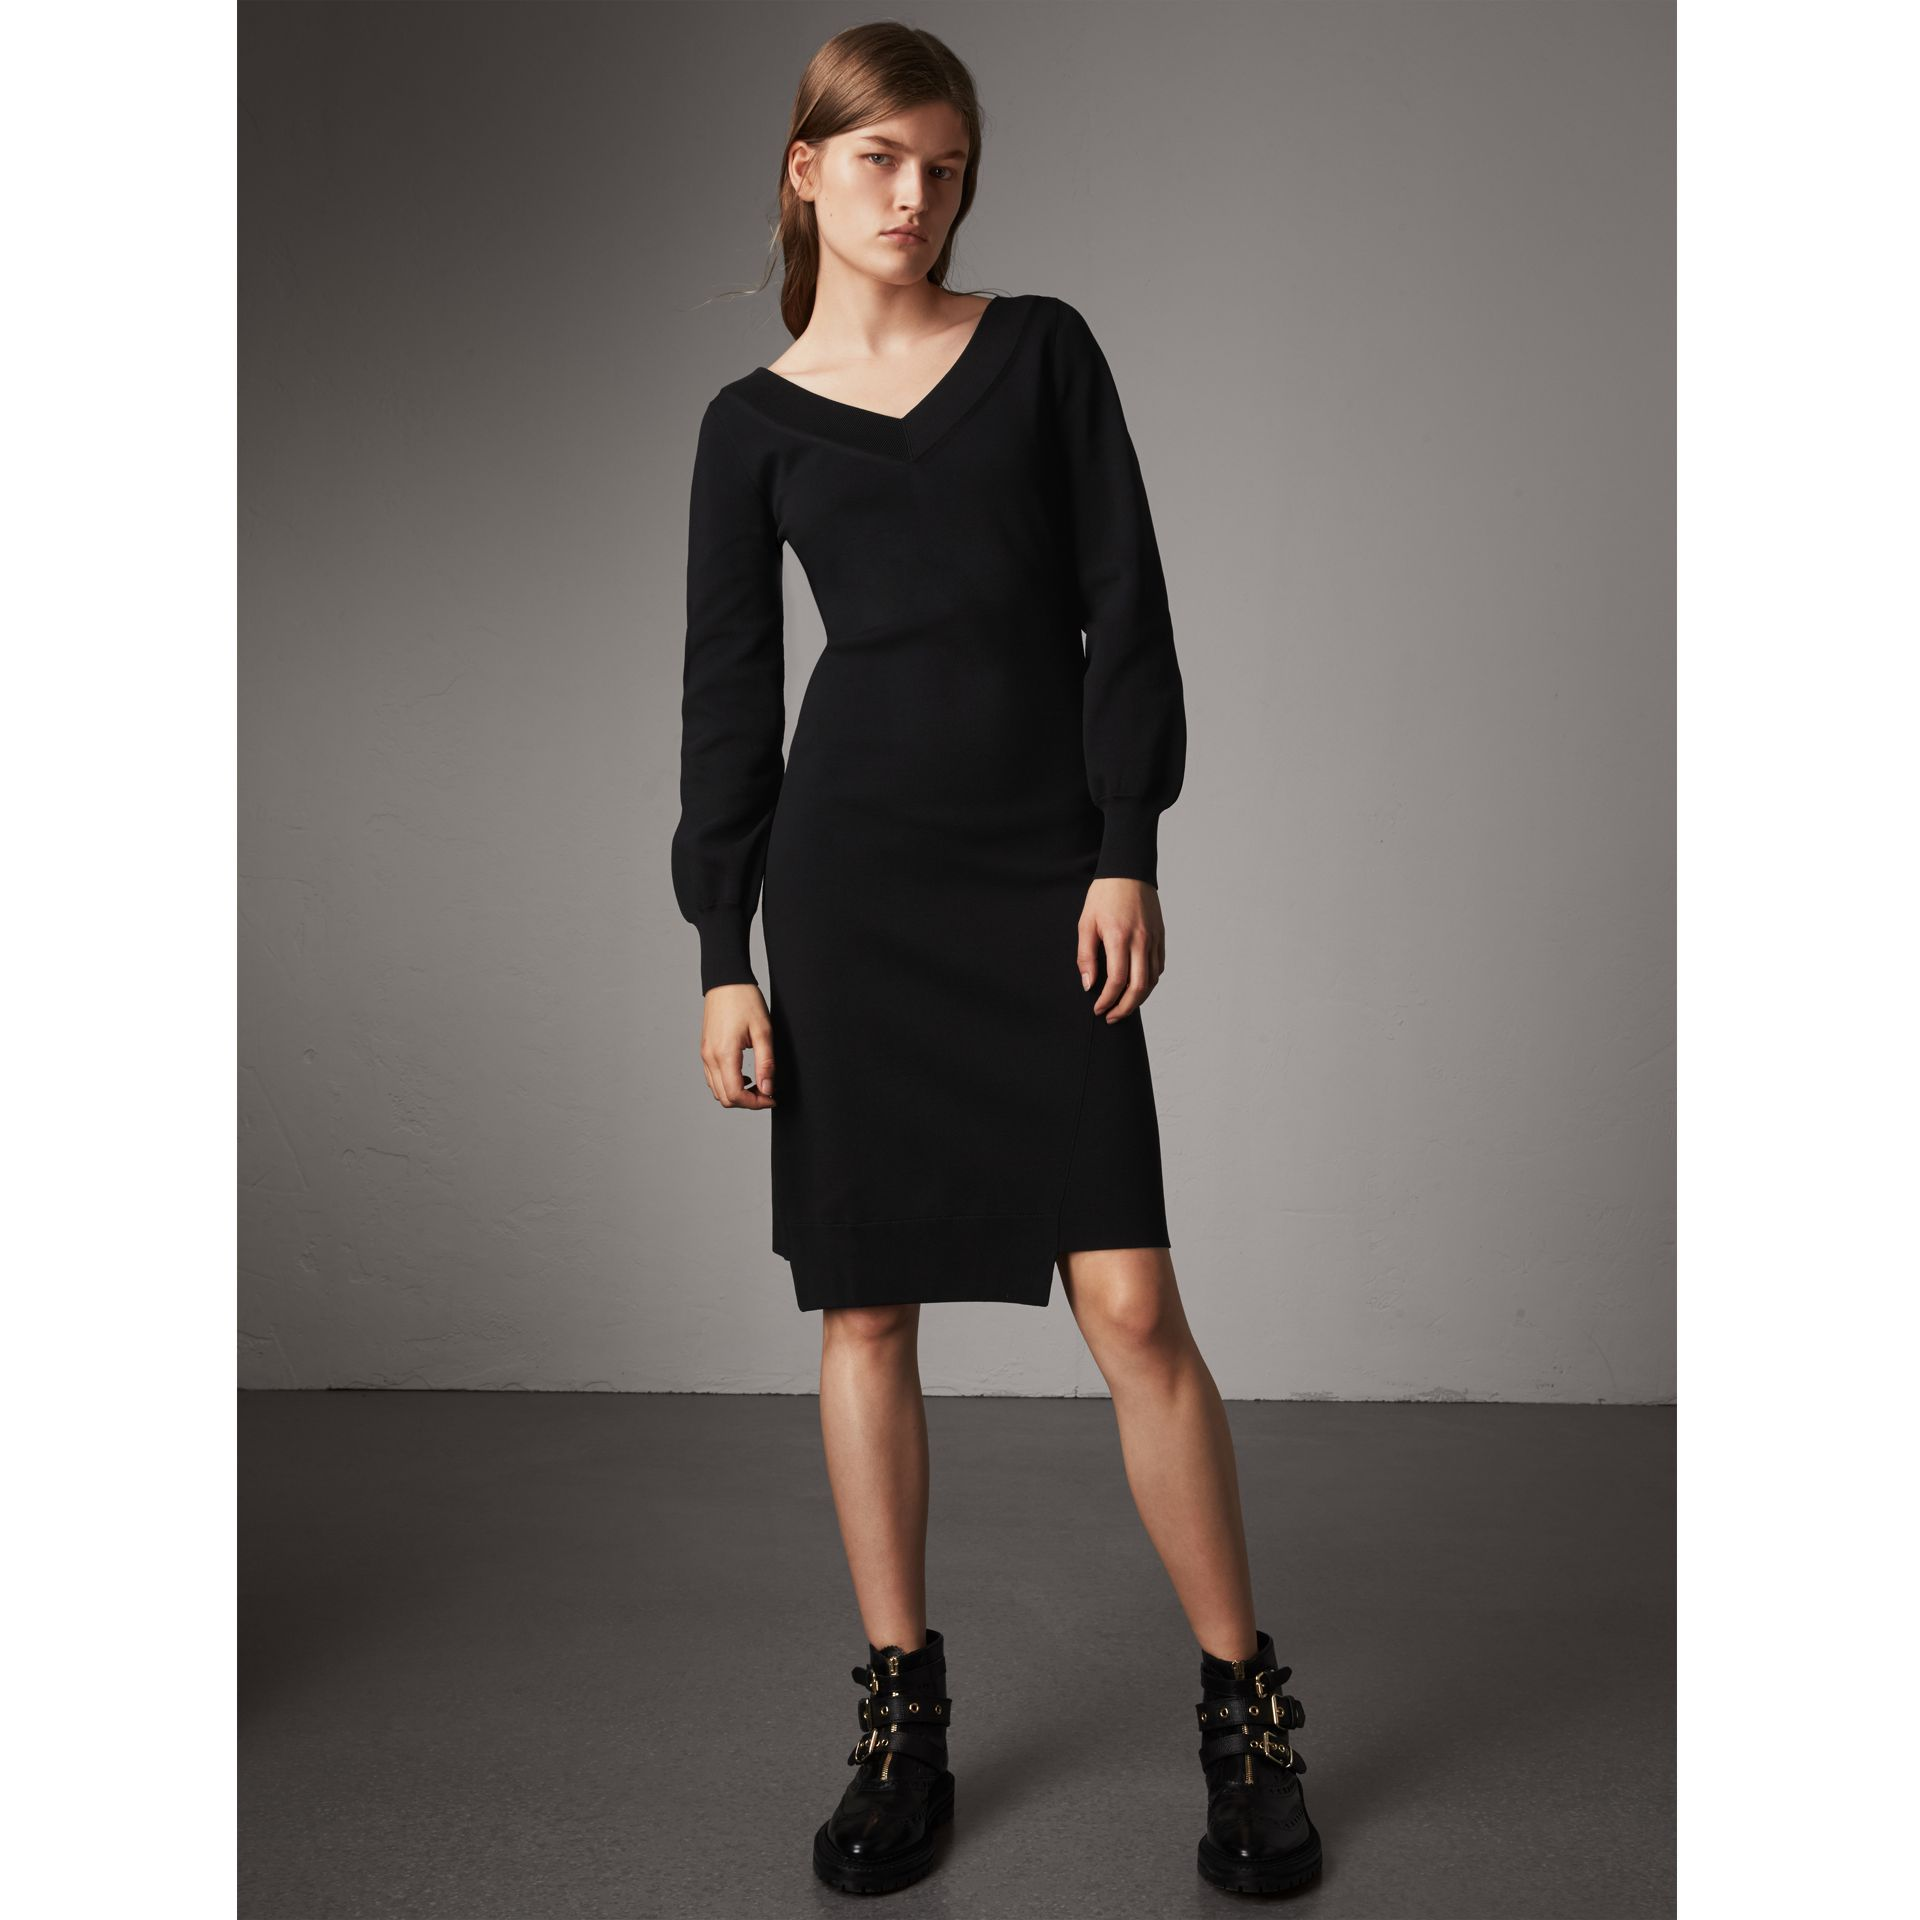 Asymmetric Knitted V-neck Dress in Black - Women | Burberry - gallery image 1